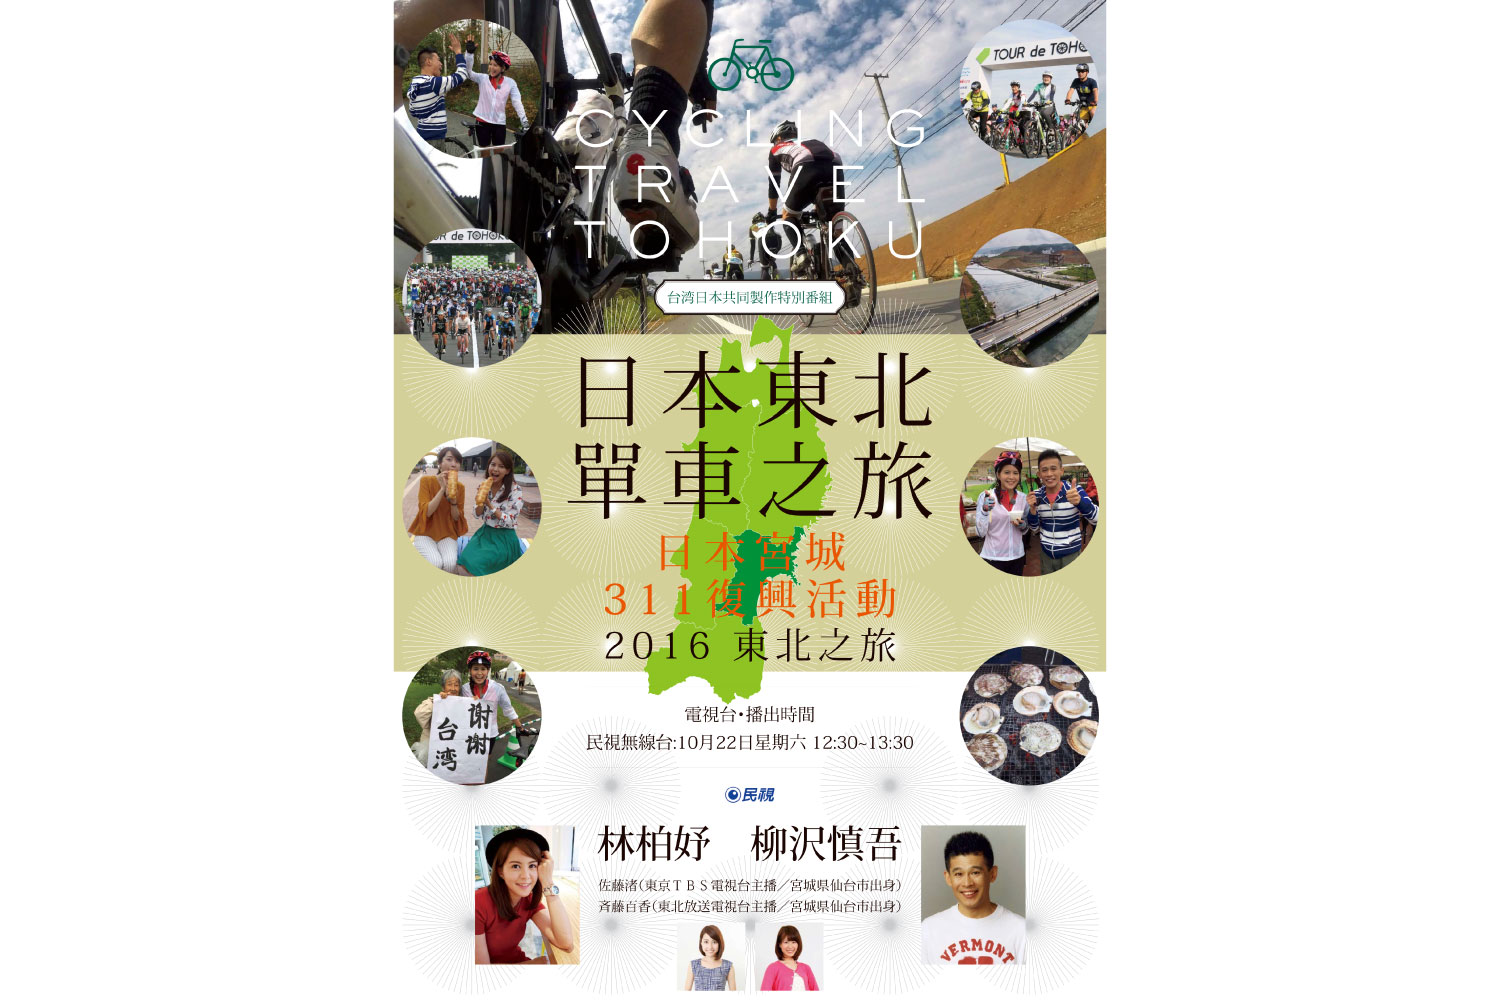 Miyagi Japan's 3/11 Reconstruction Event: The Tour de Tohoku 2016